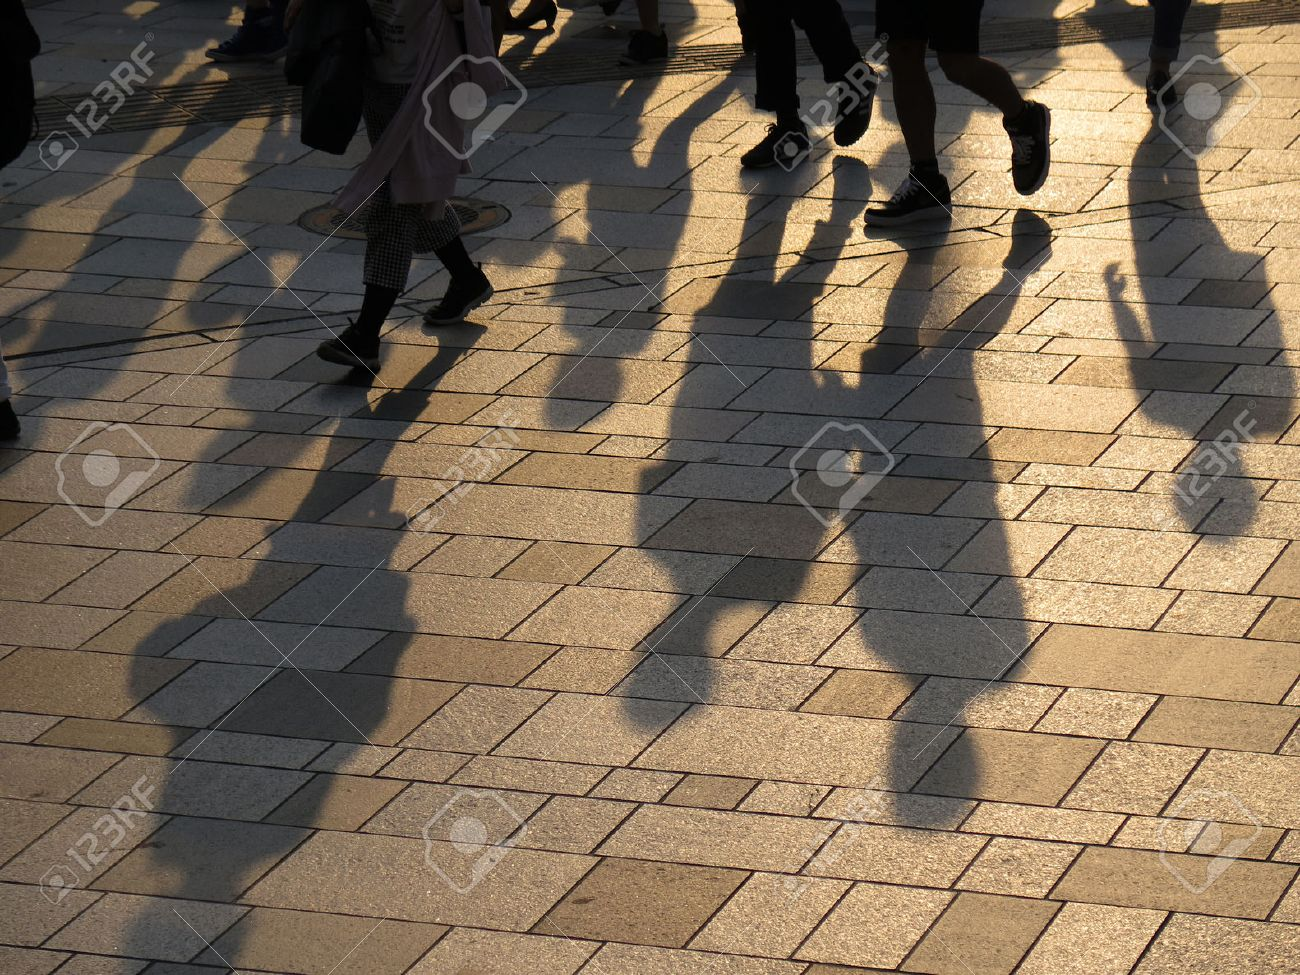 shadow of people walking together - 51827881